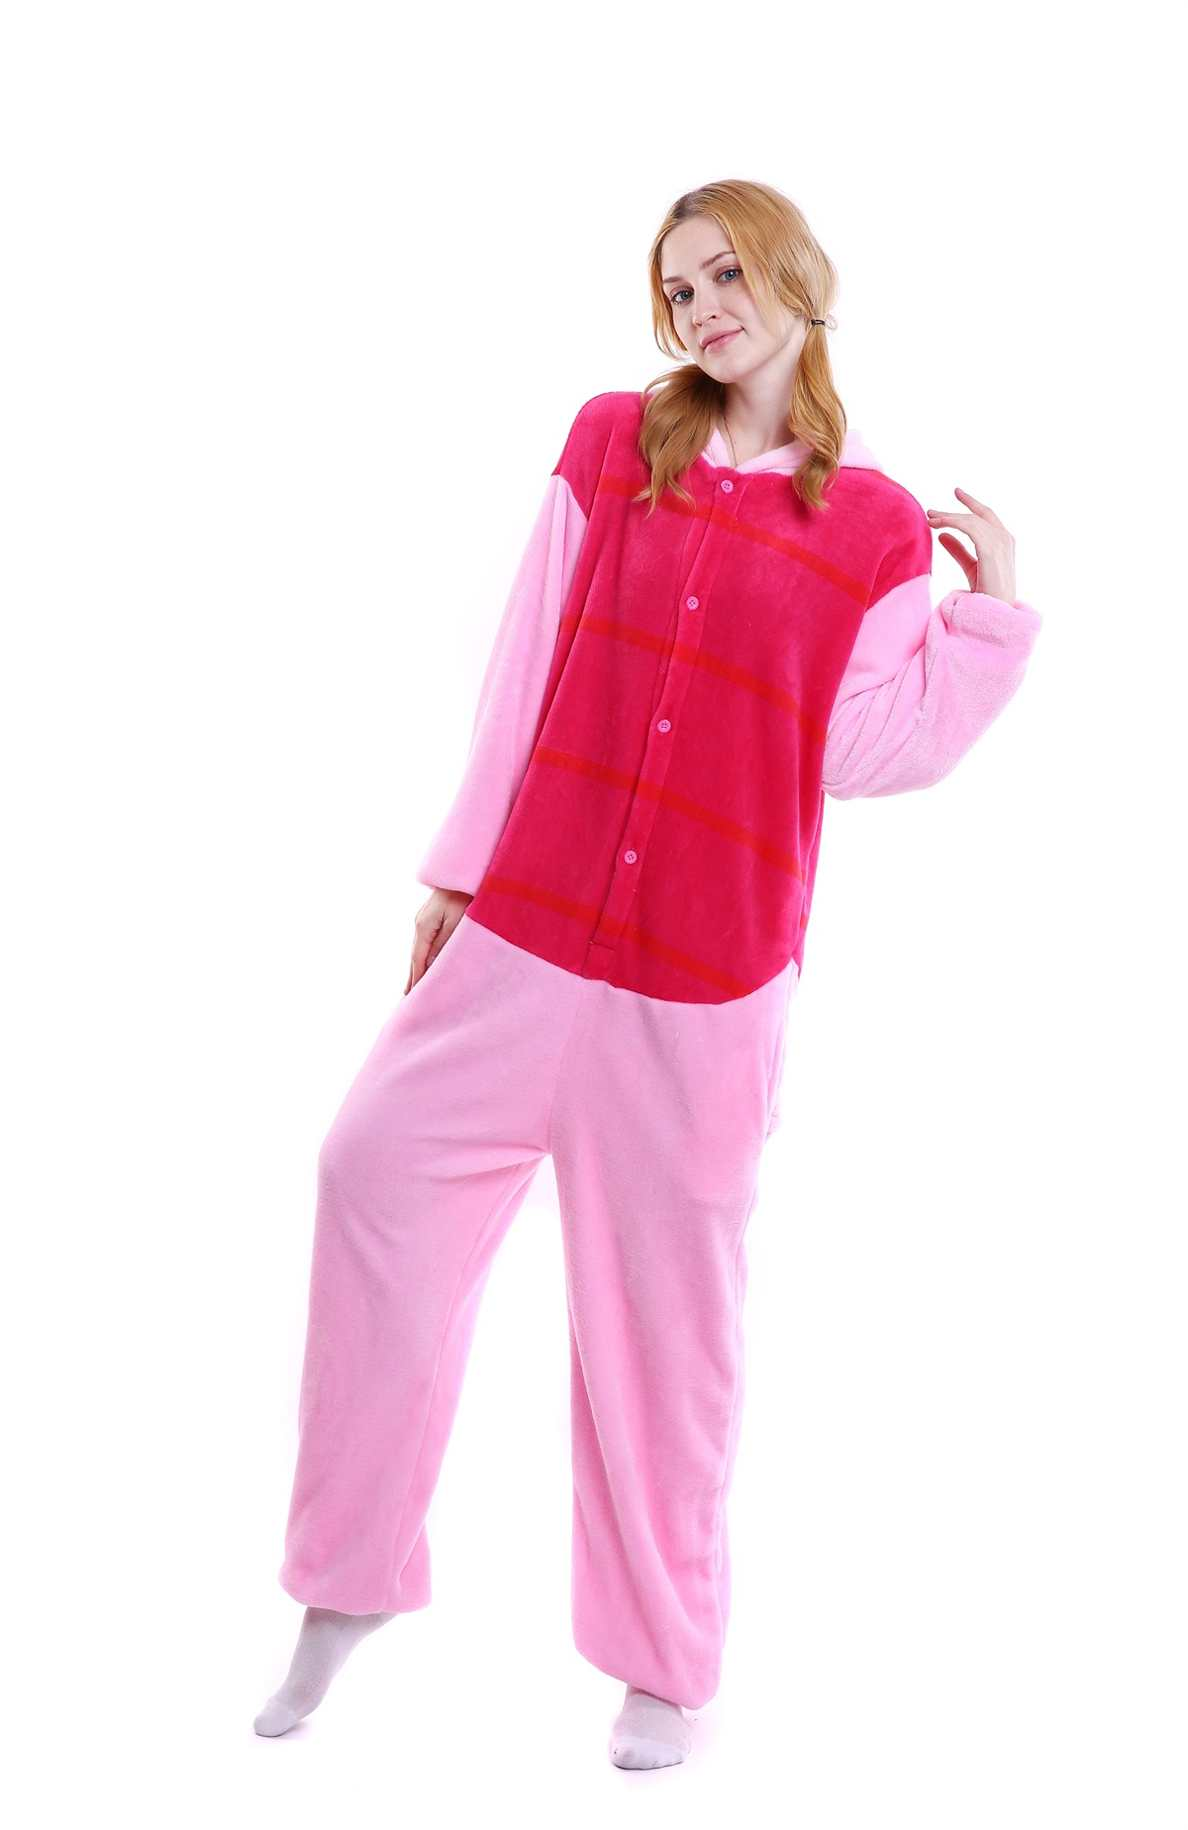 Animal Onesie For Women - Cute Holiday Gifts